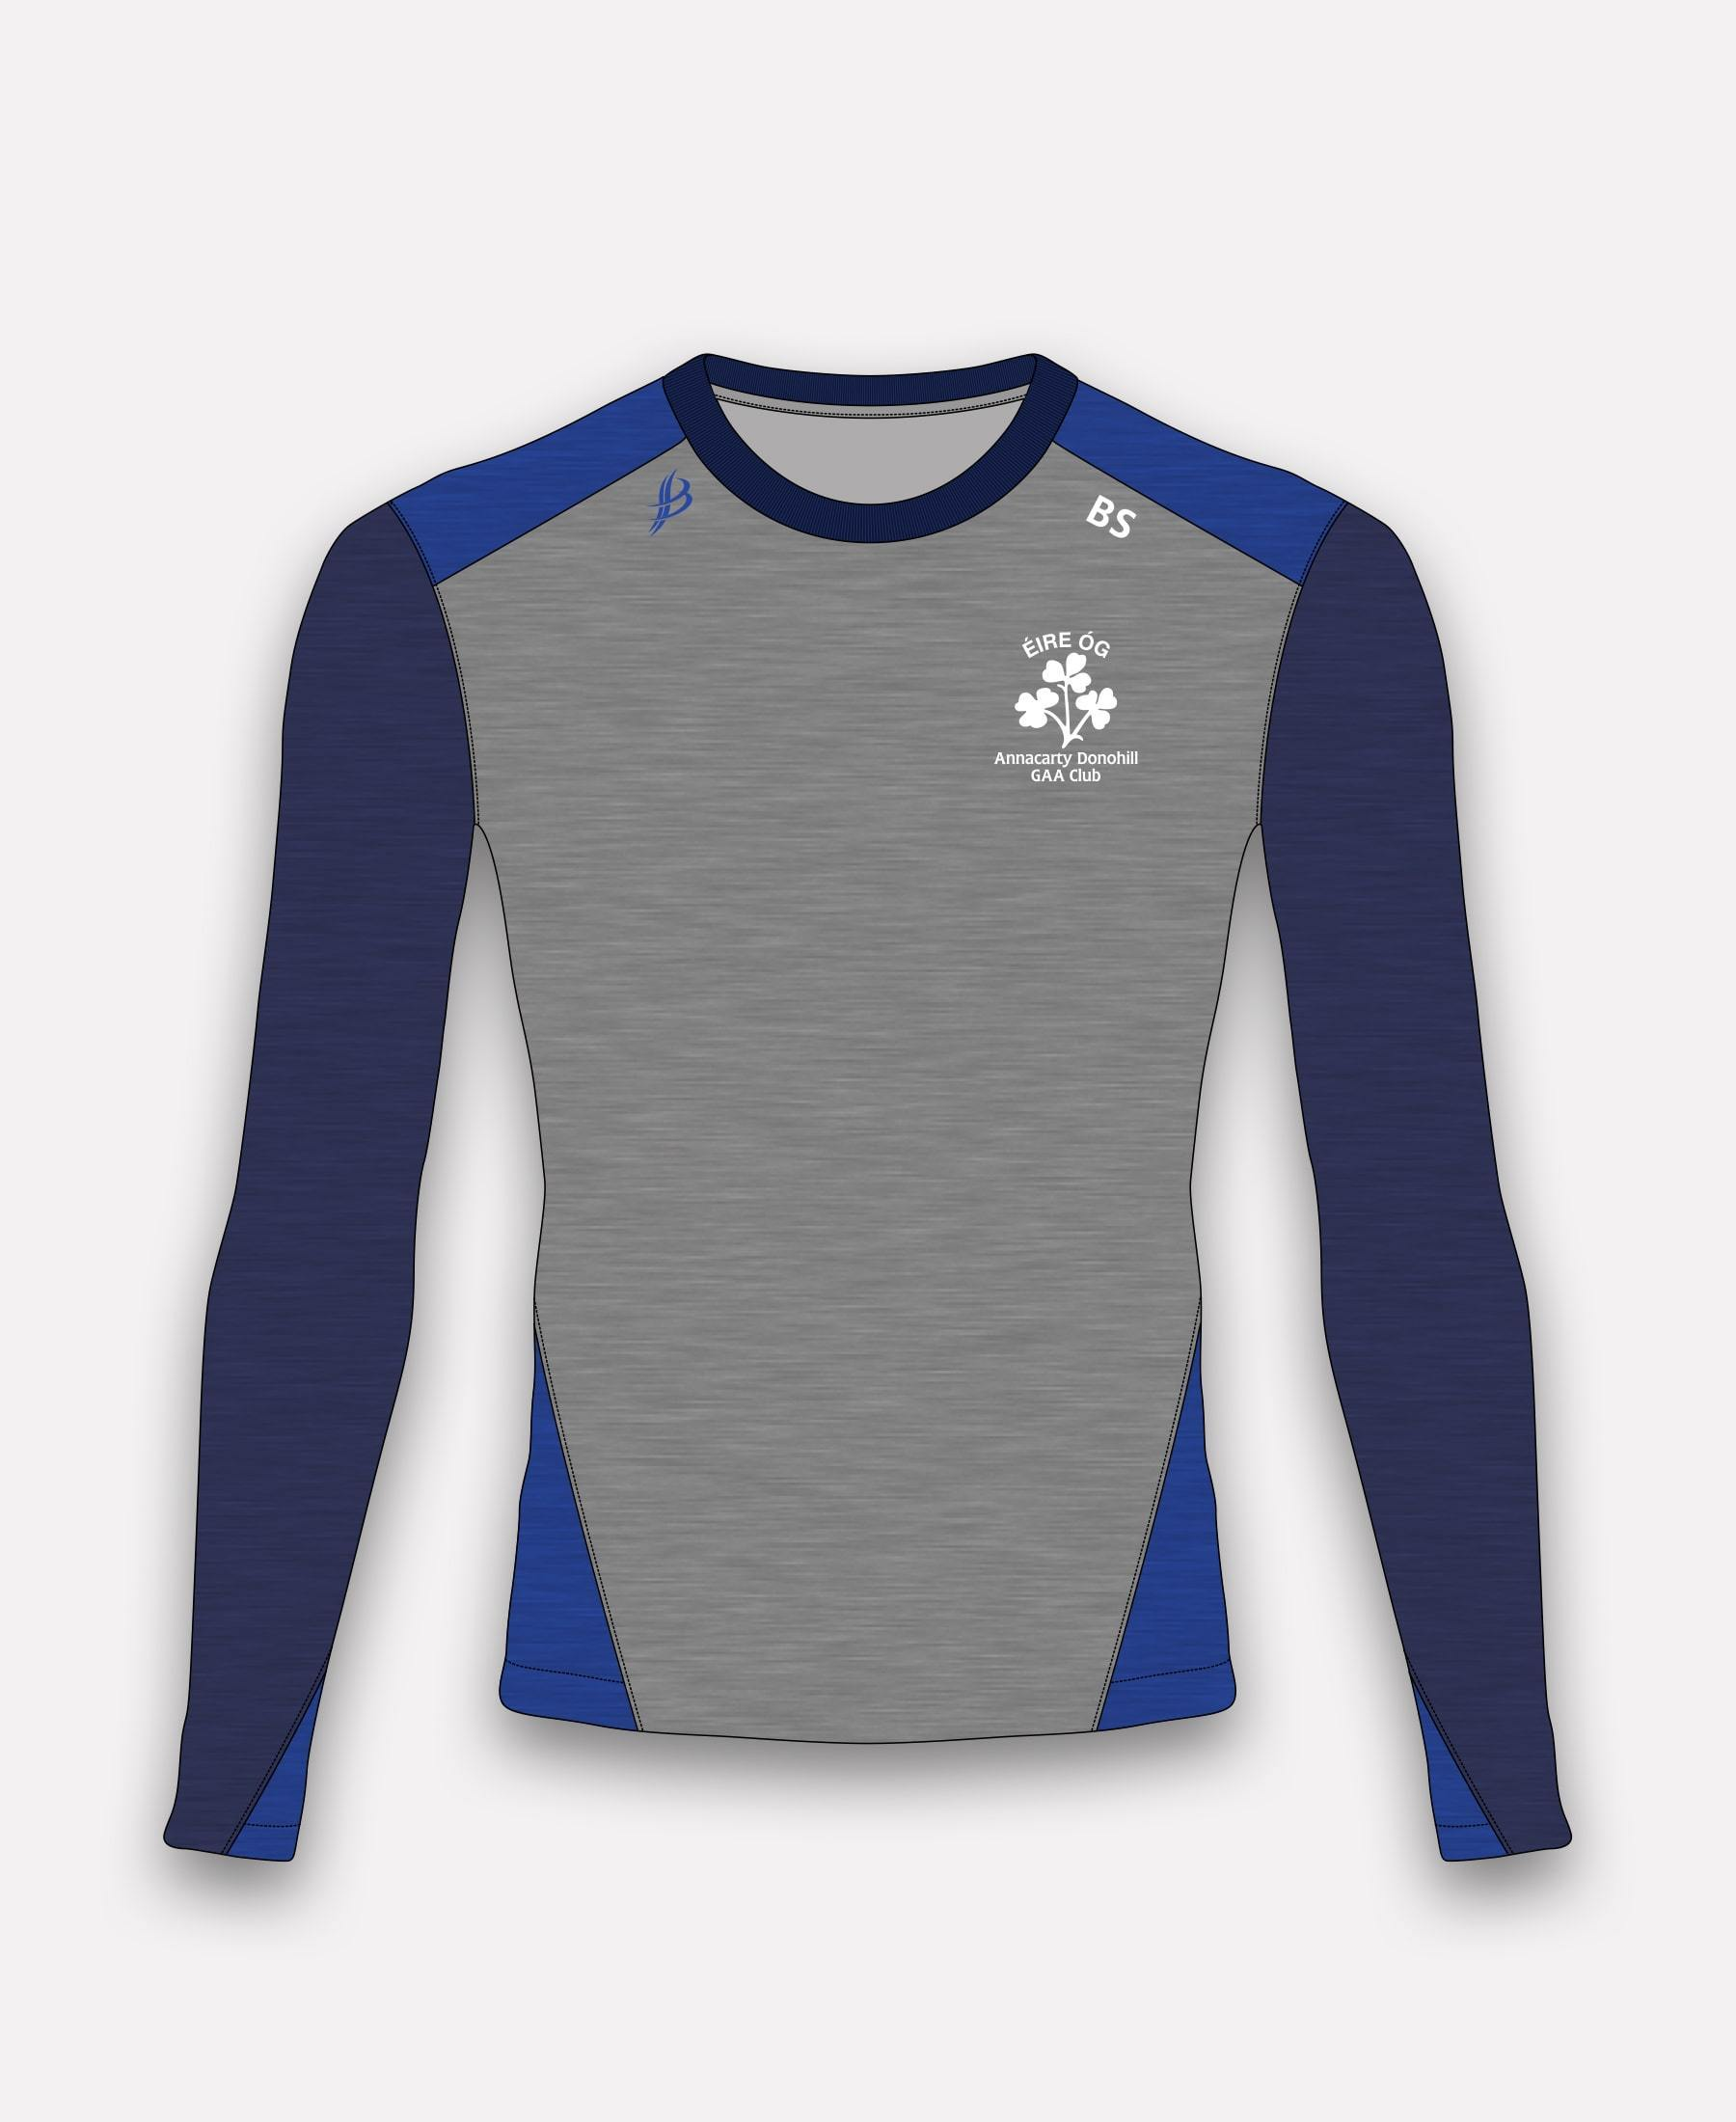 Eire Og Annacarty Donohill GAA BUA Crew Neck - Bourke Sports Limited